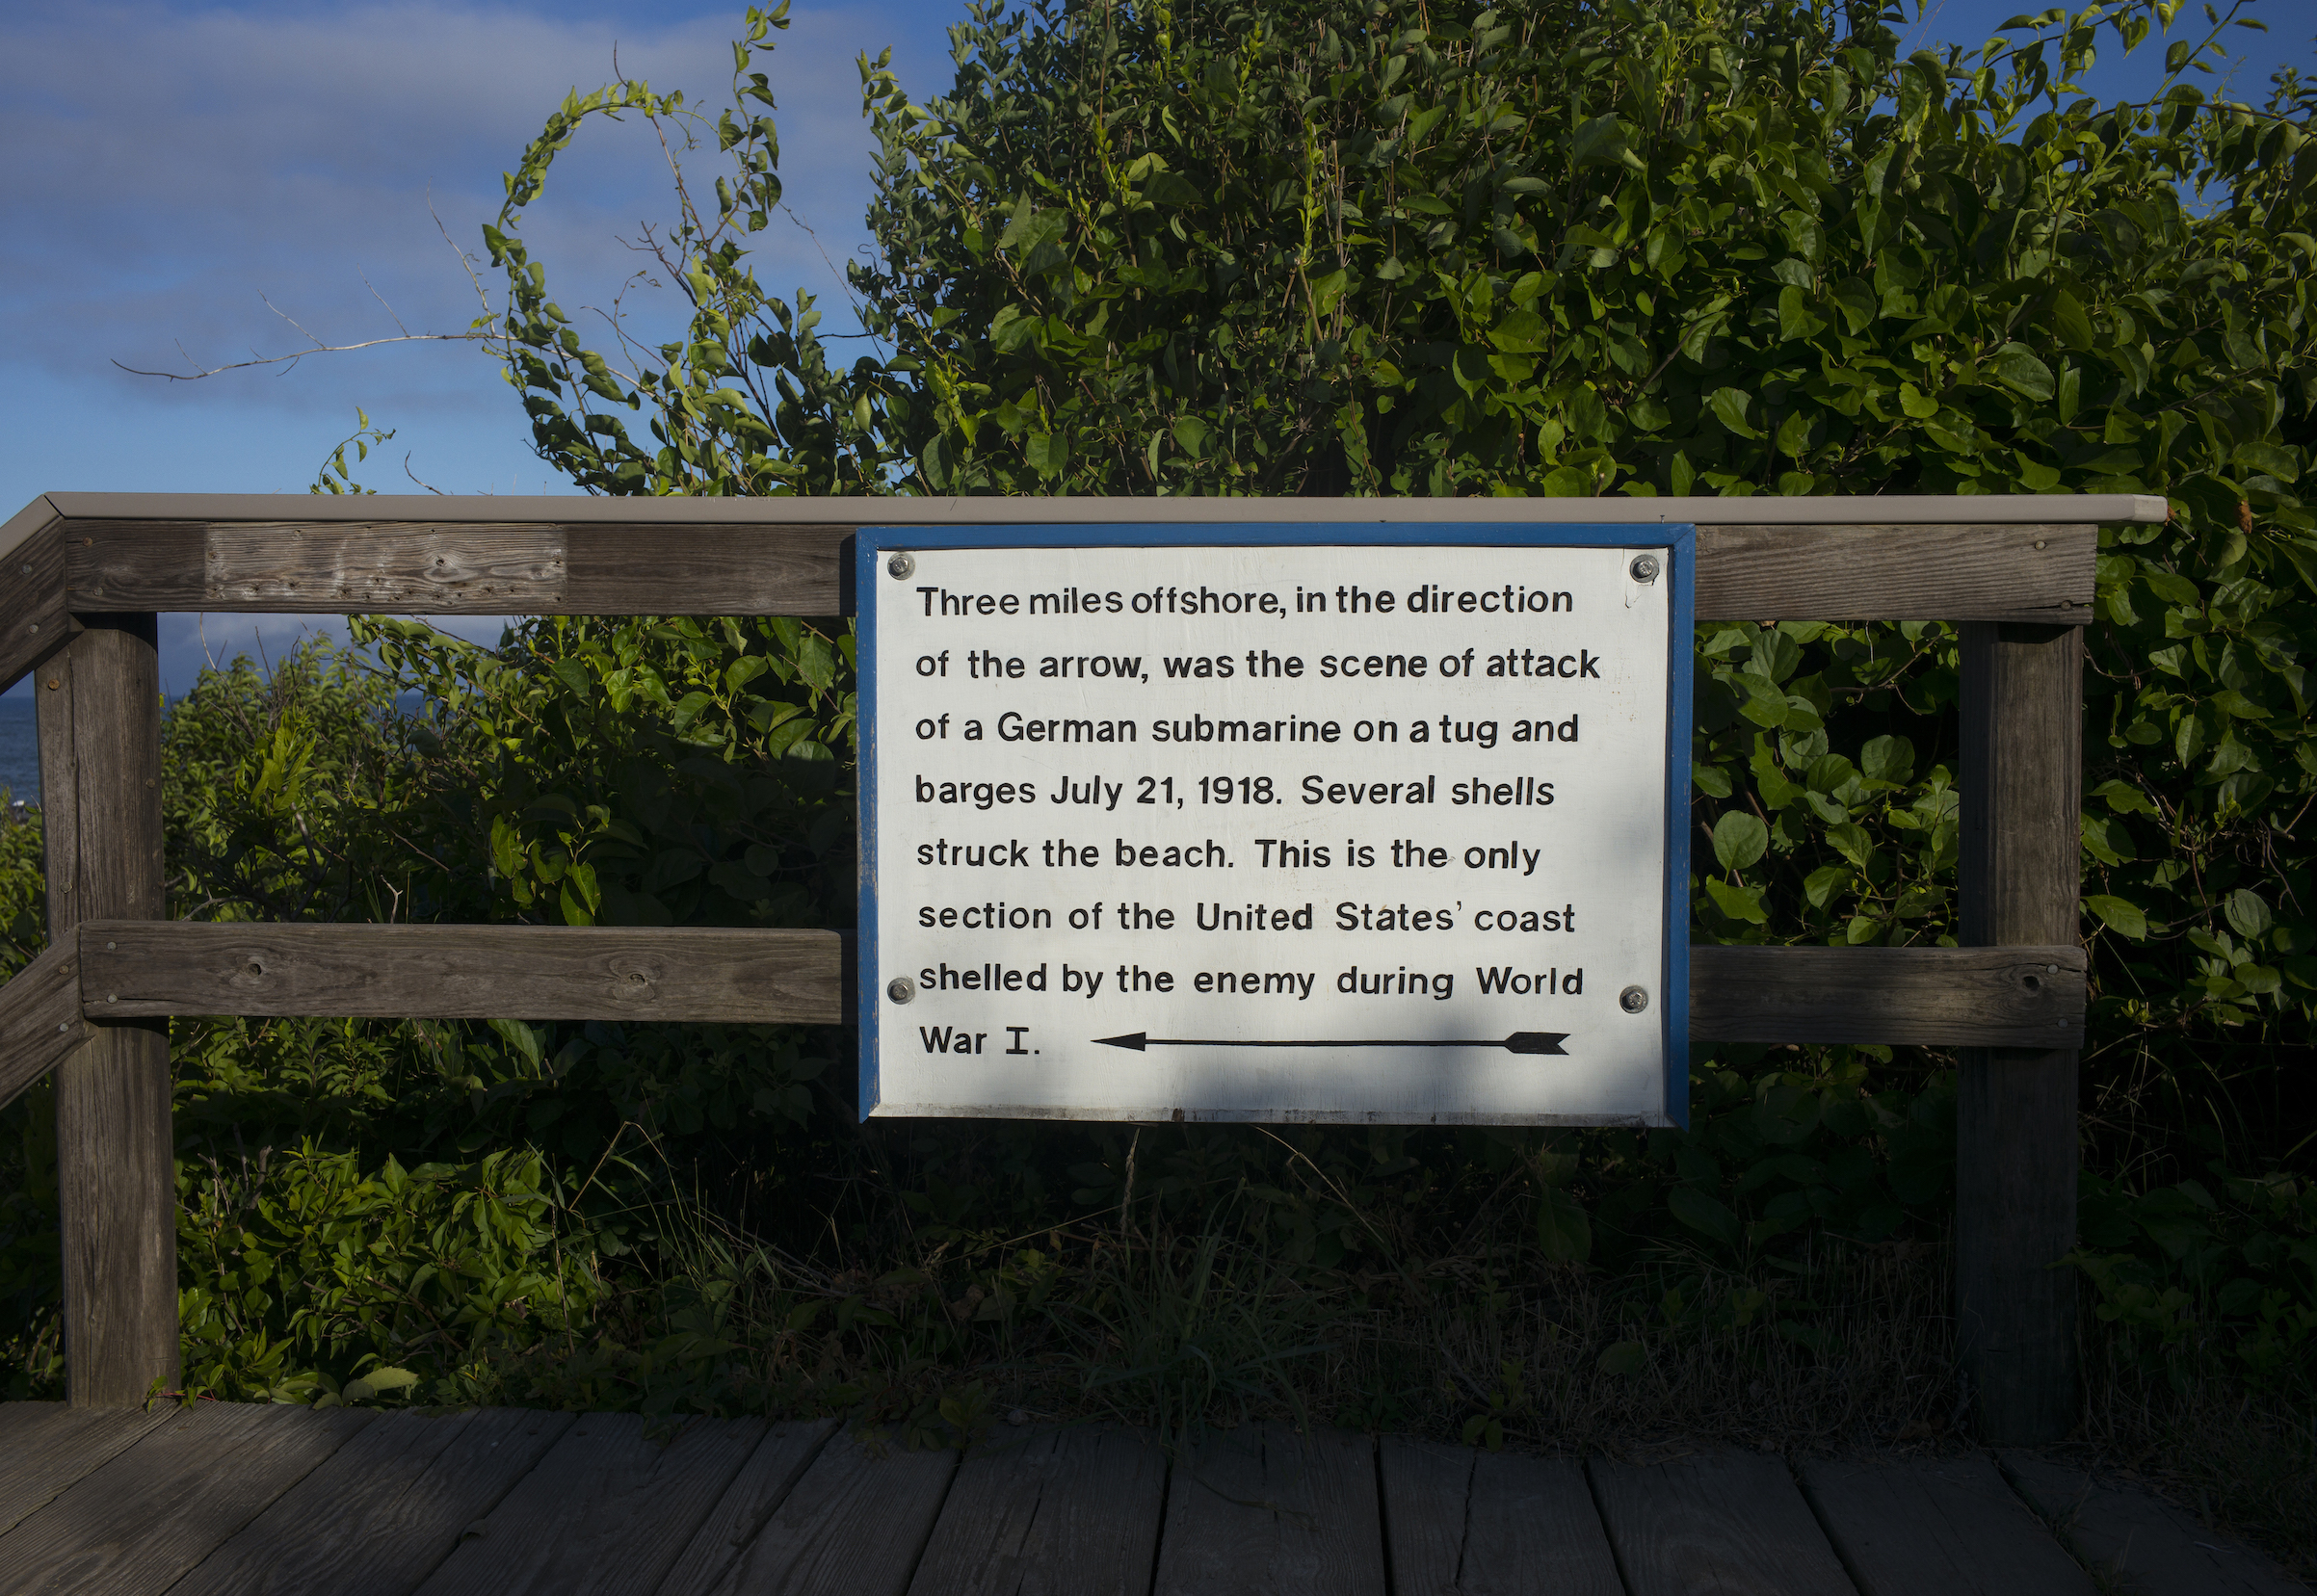 A sign describes where a German submarine three miles offshore on July 21, 1918, attacked a tug and barges and where artillery shells struck the beach below on NausettHeights in East Orleans, Mass. (Photographed in 2016)